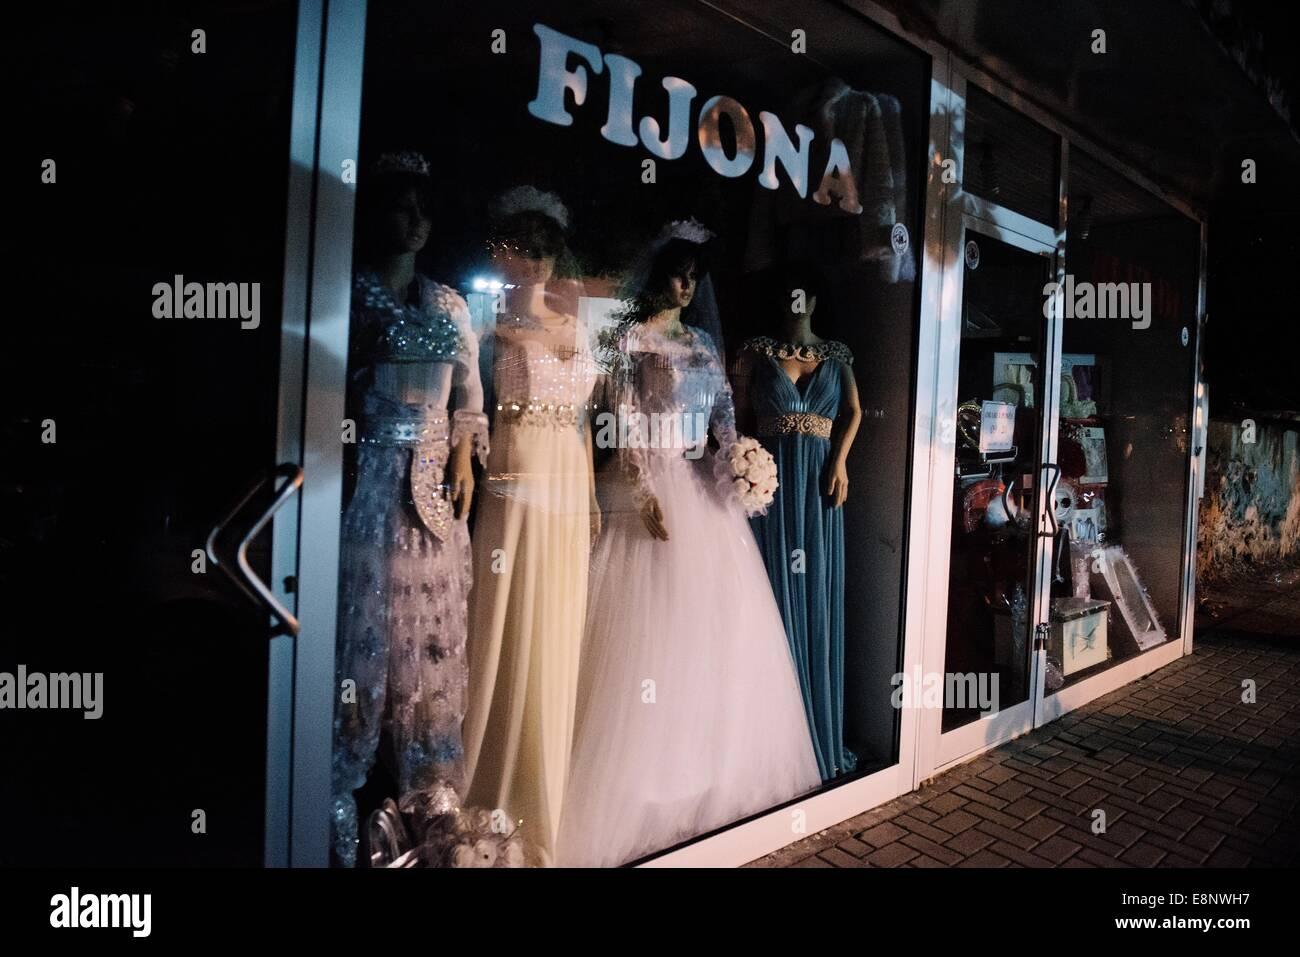 View Of The Window Of A Shop Selling Wedding Dresses In The City Of Stock Photo Alamy,Lace Vintage Style Plus Size Wedding Dresses